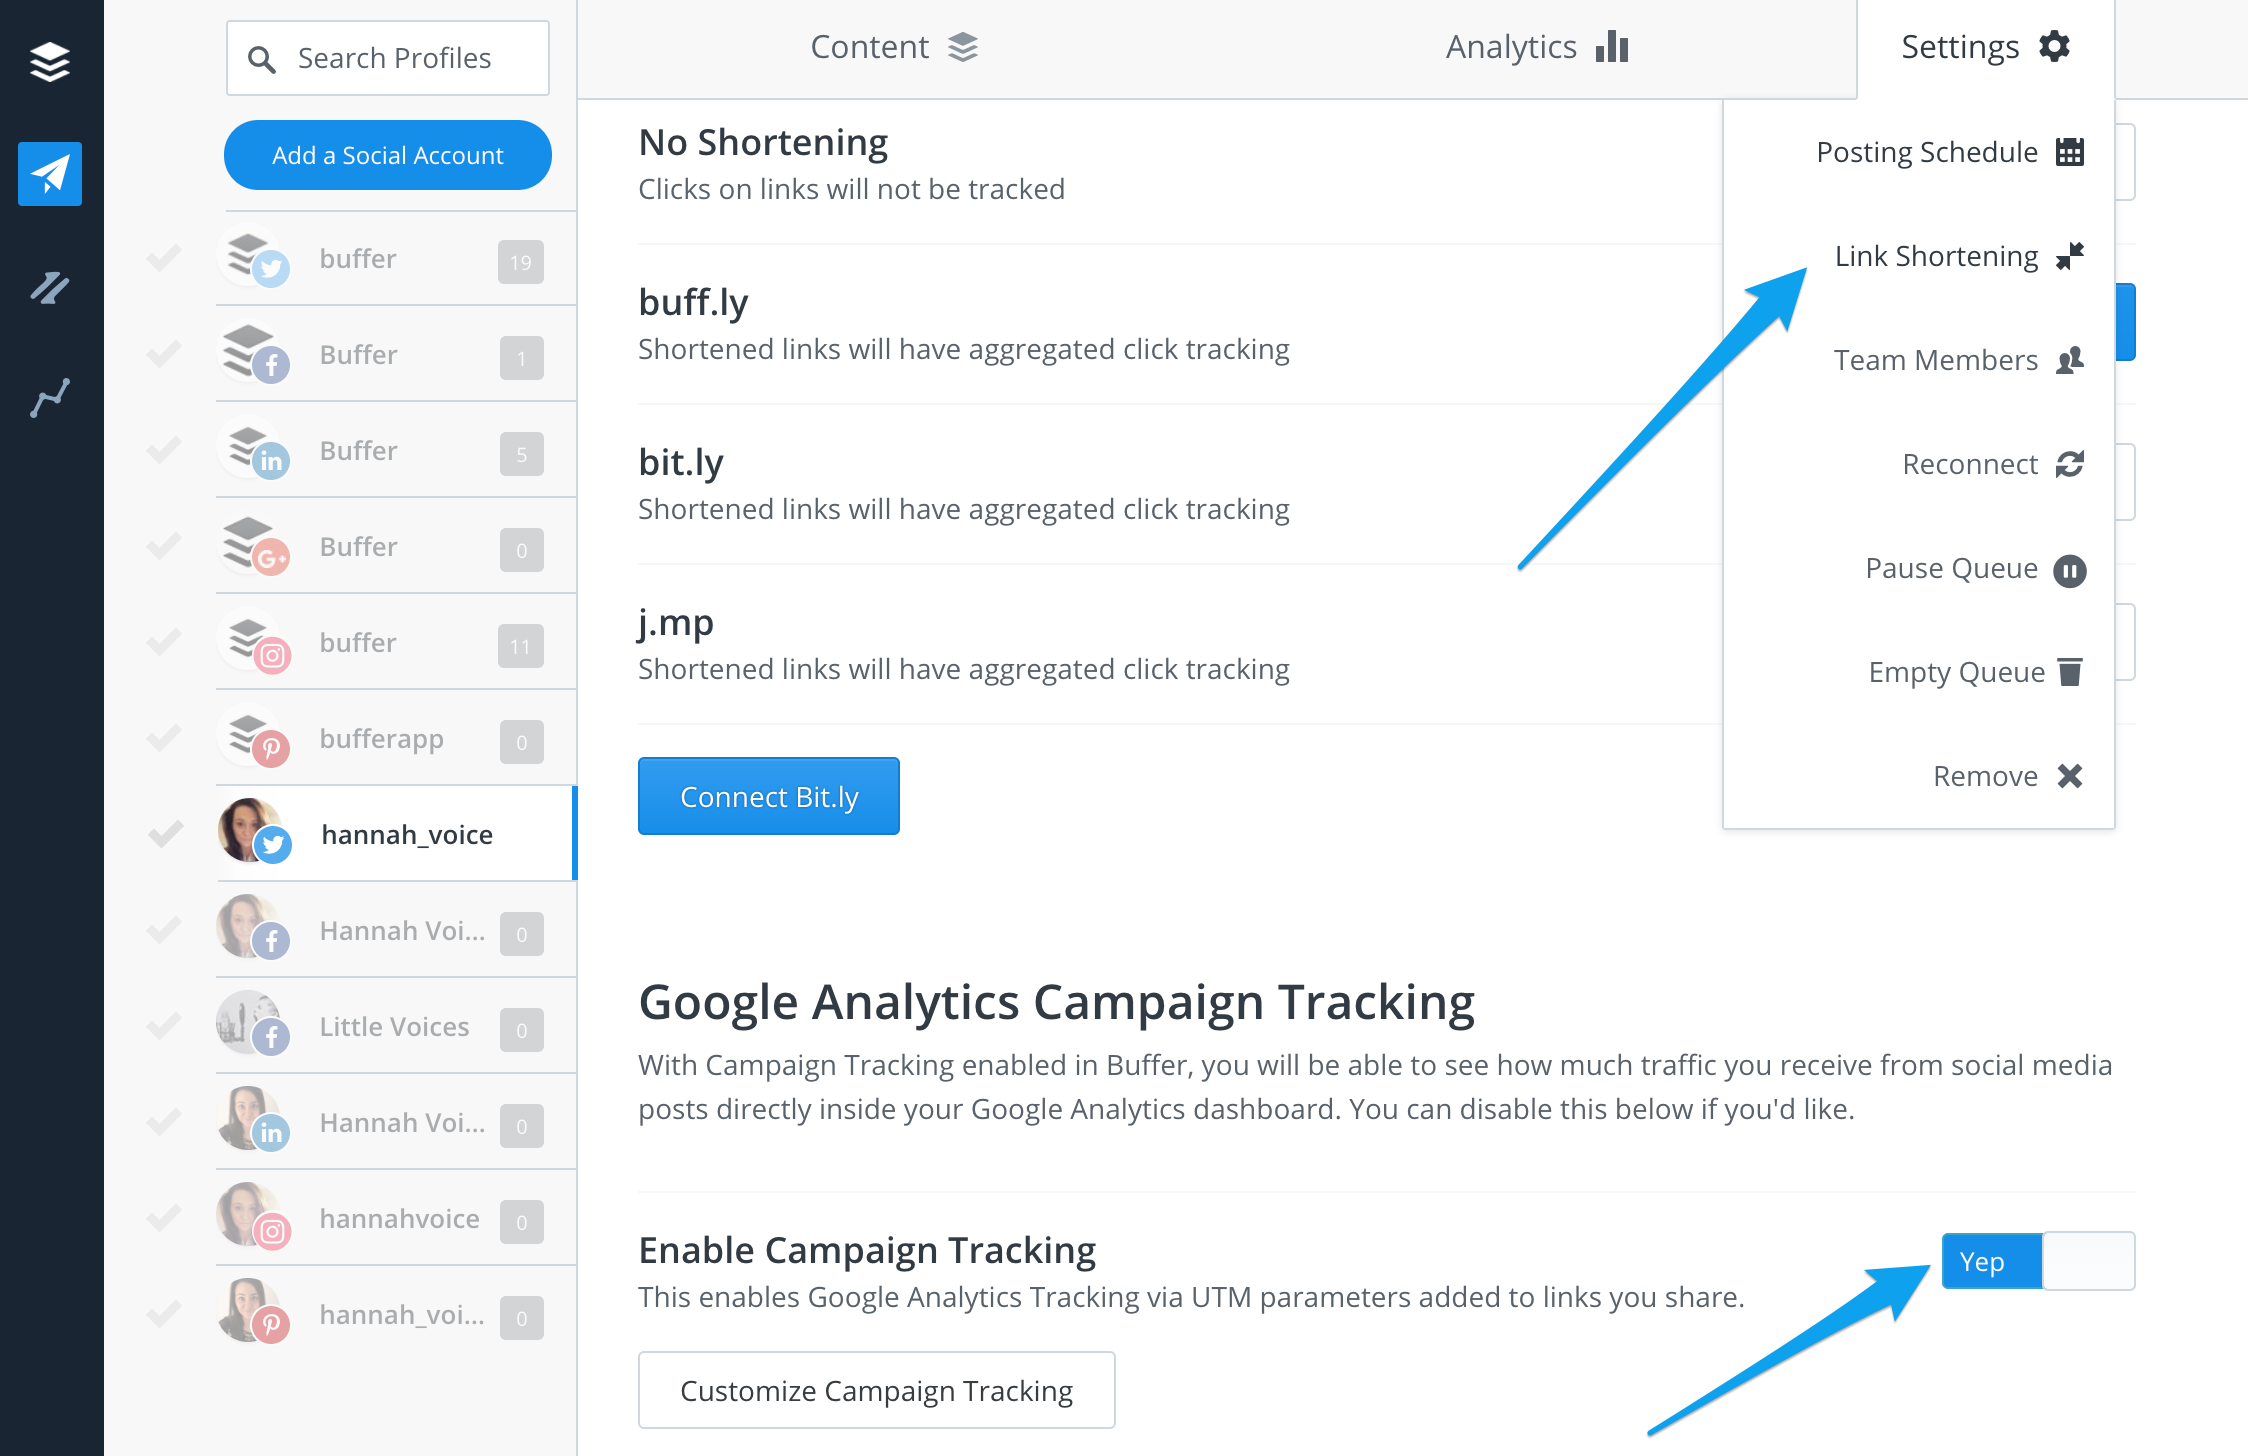 publish an introduction to utm parameters and google analytics